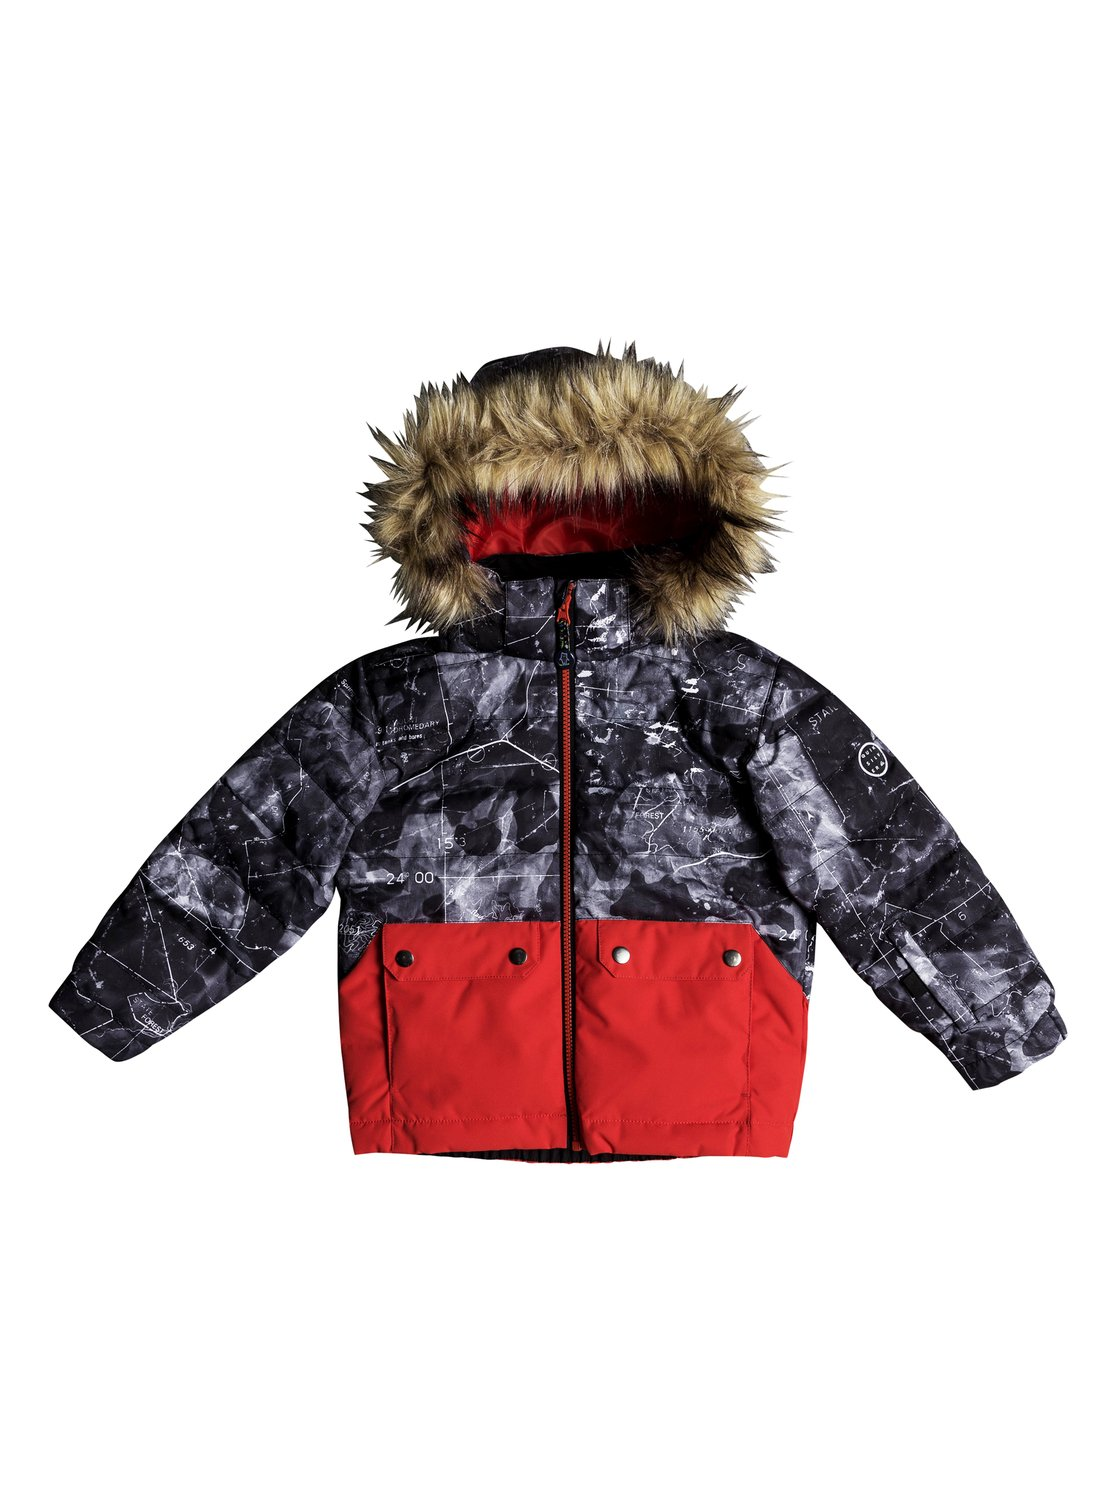 5b11769f0 Edgy - Snow Jacket for Boys 2-7 3613373693938